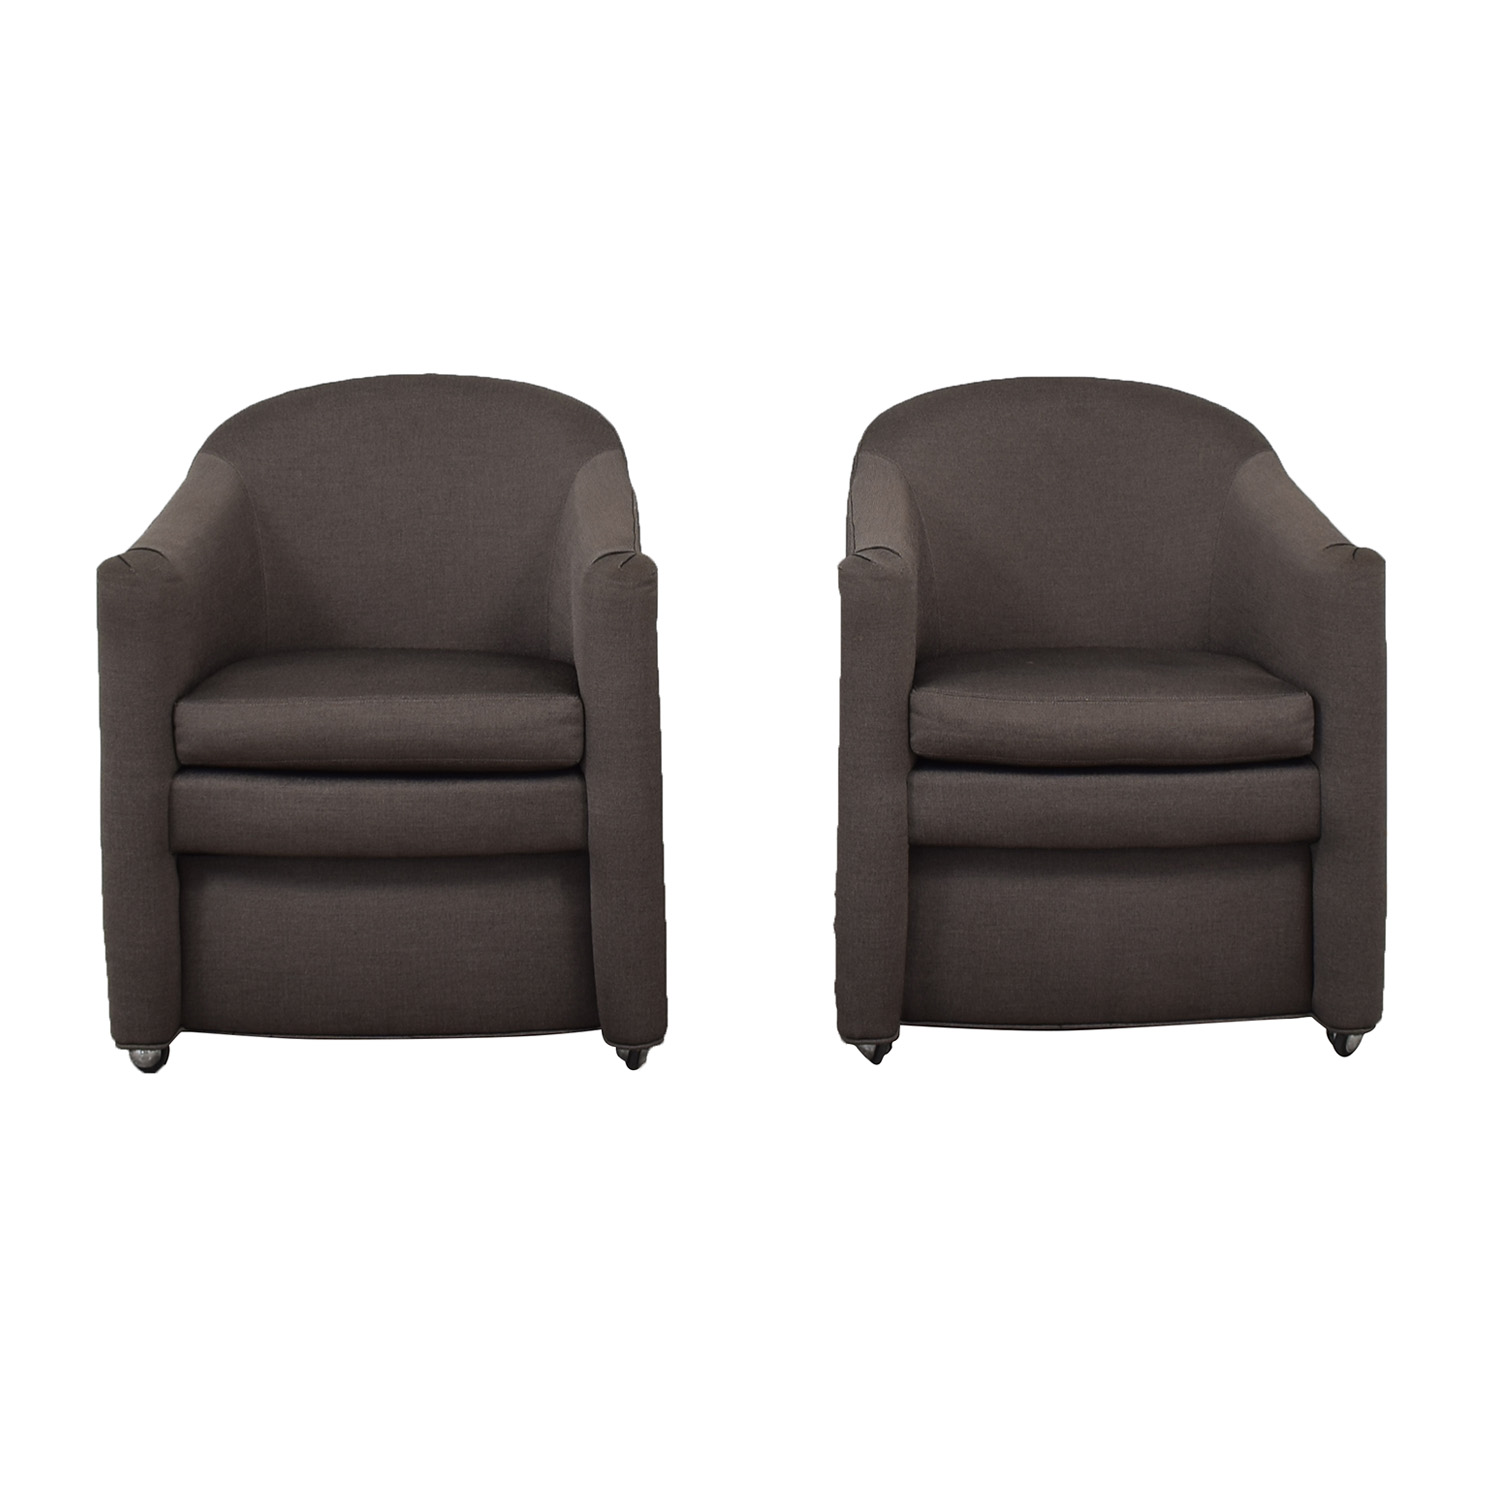 Kravet Kravet Grey Wianno Accent Chairs nj